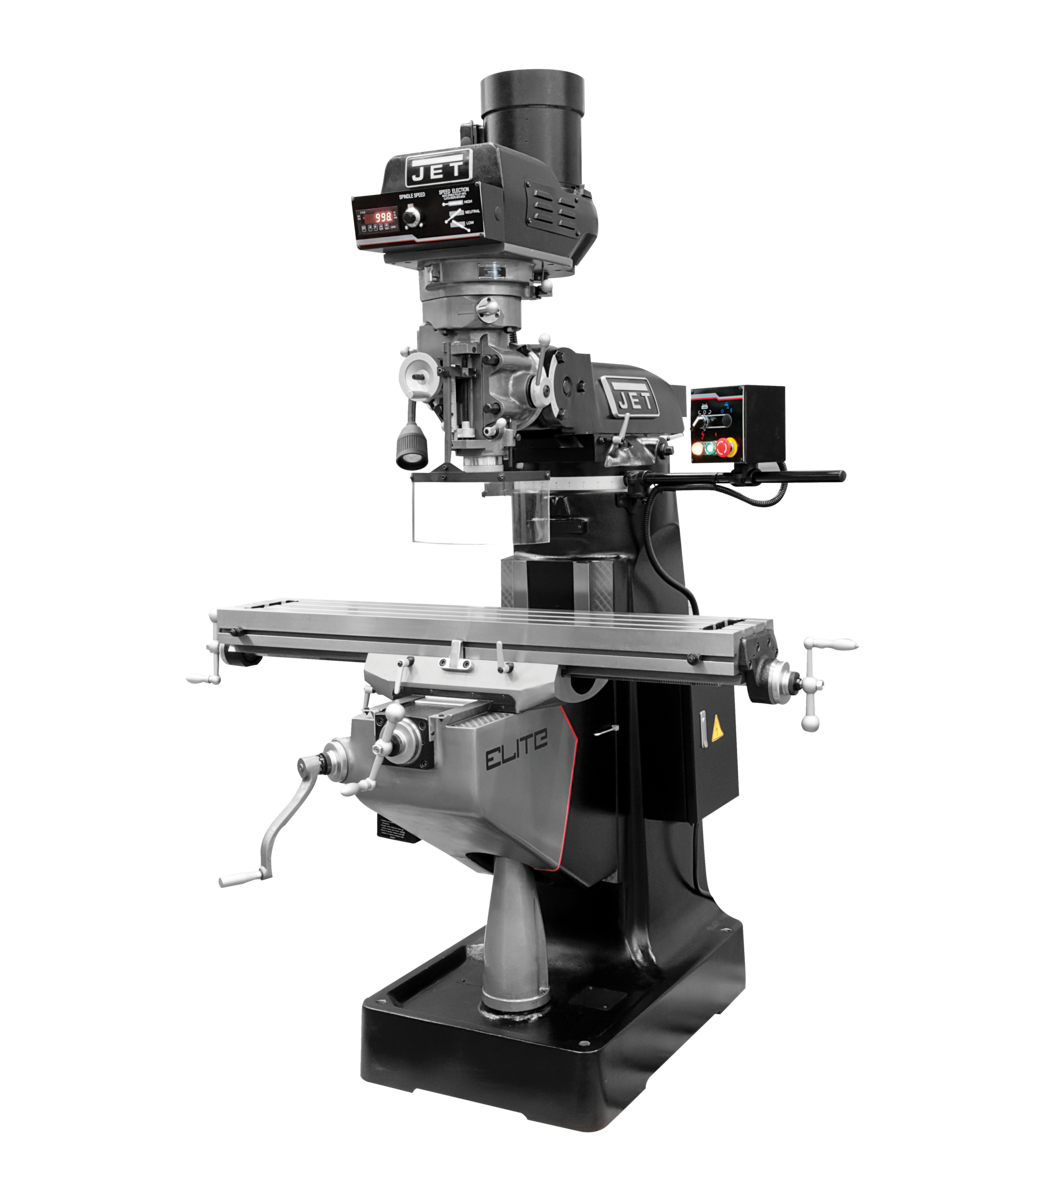 EVS-949 Mill with 3-Axis Newall DP700 (Quill) DRO and Servo X-Axis Powerfeed